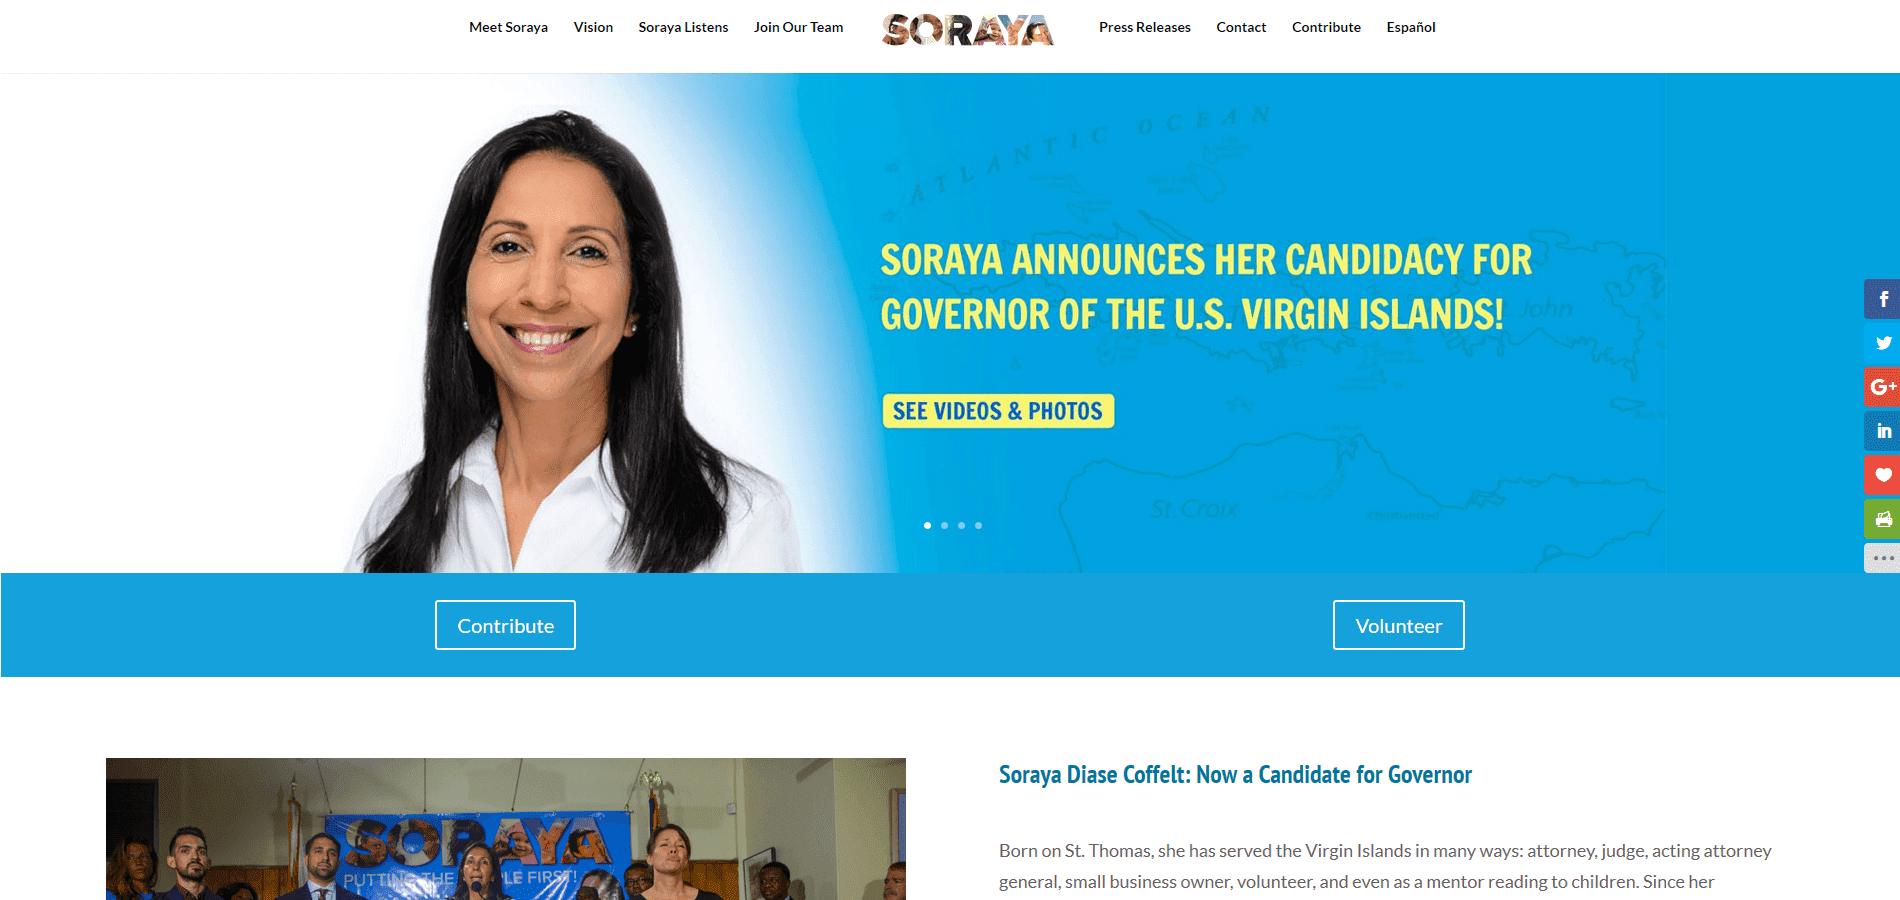 Custom Political WordPress Design Example